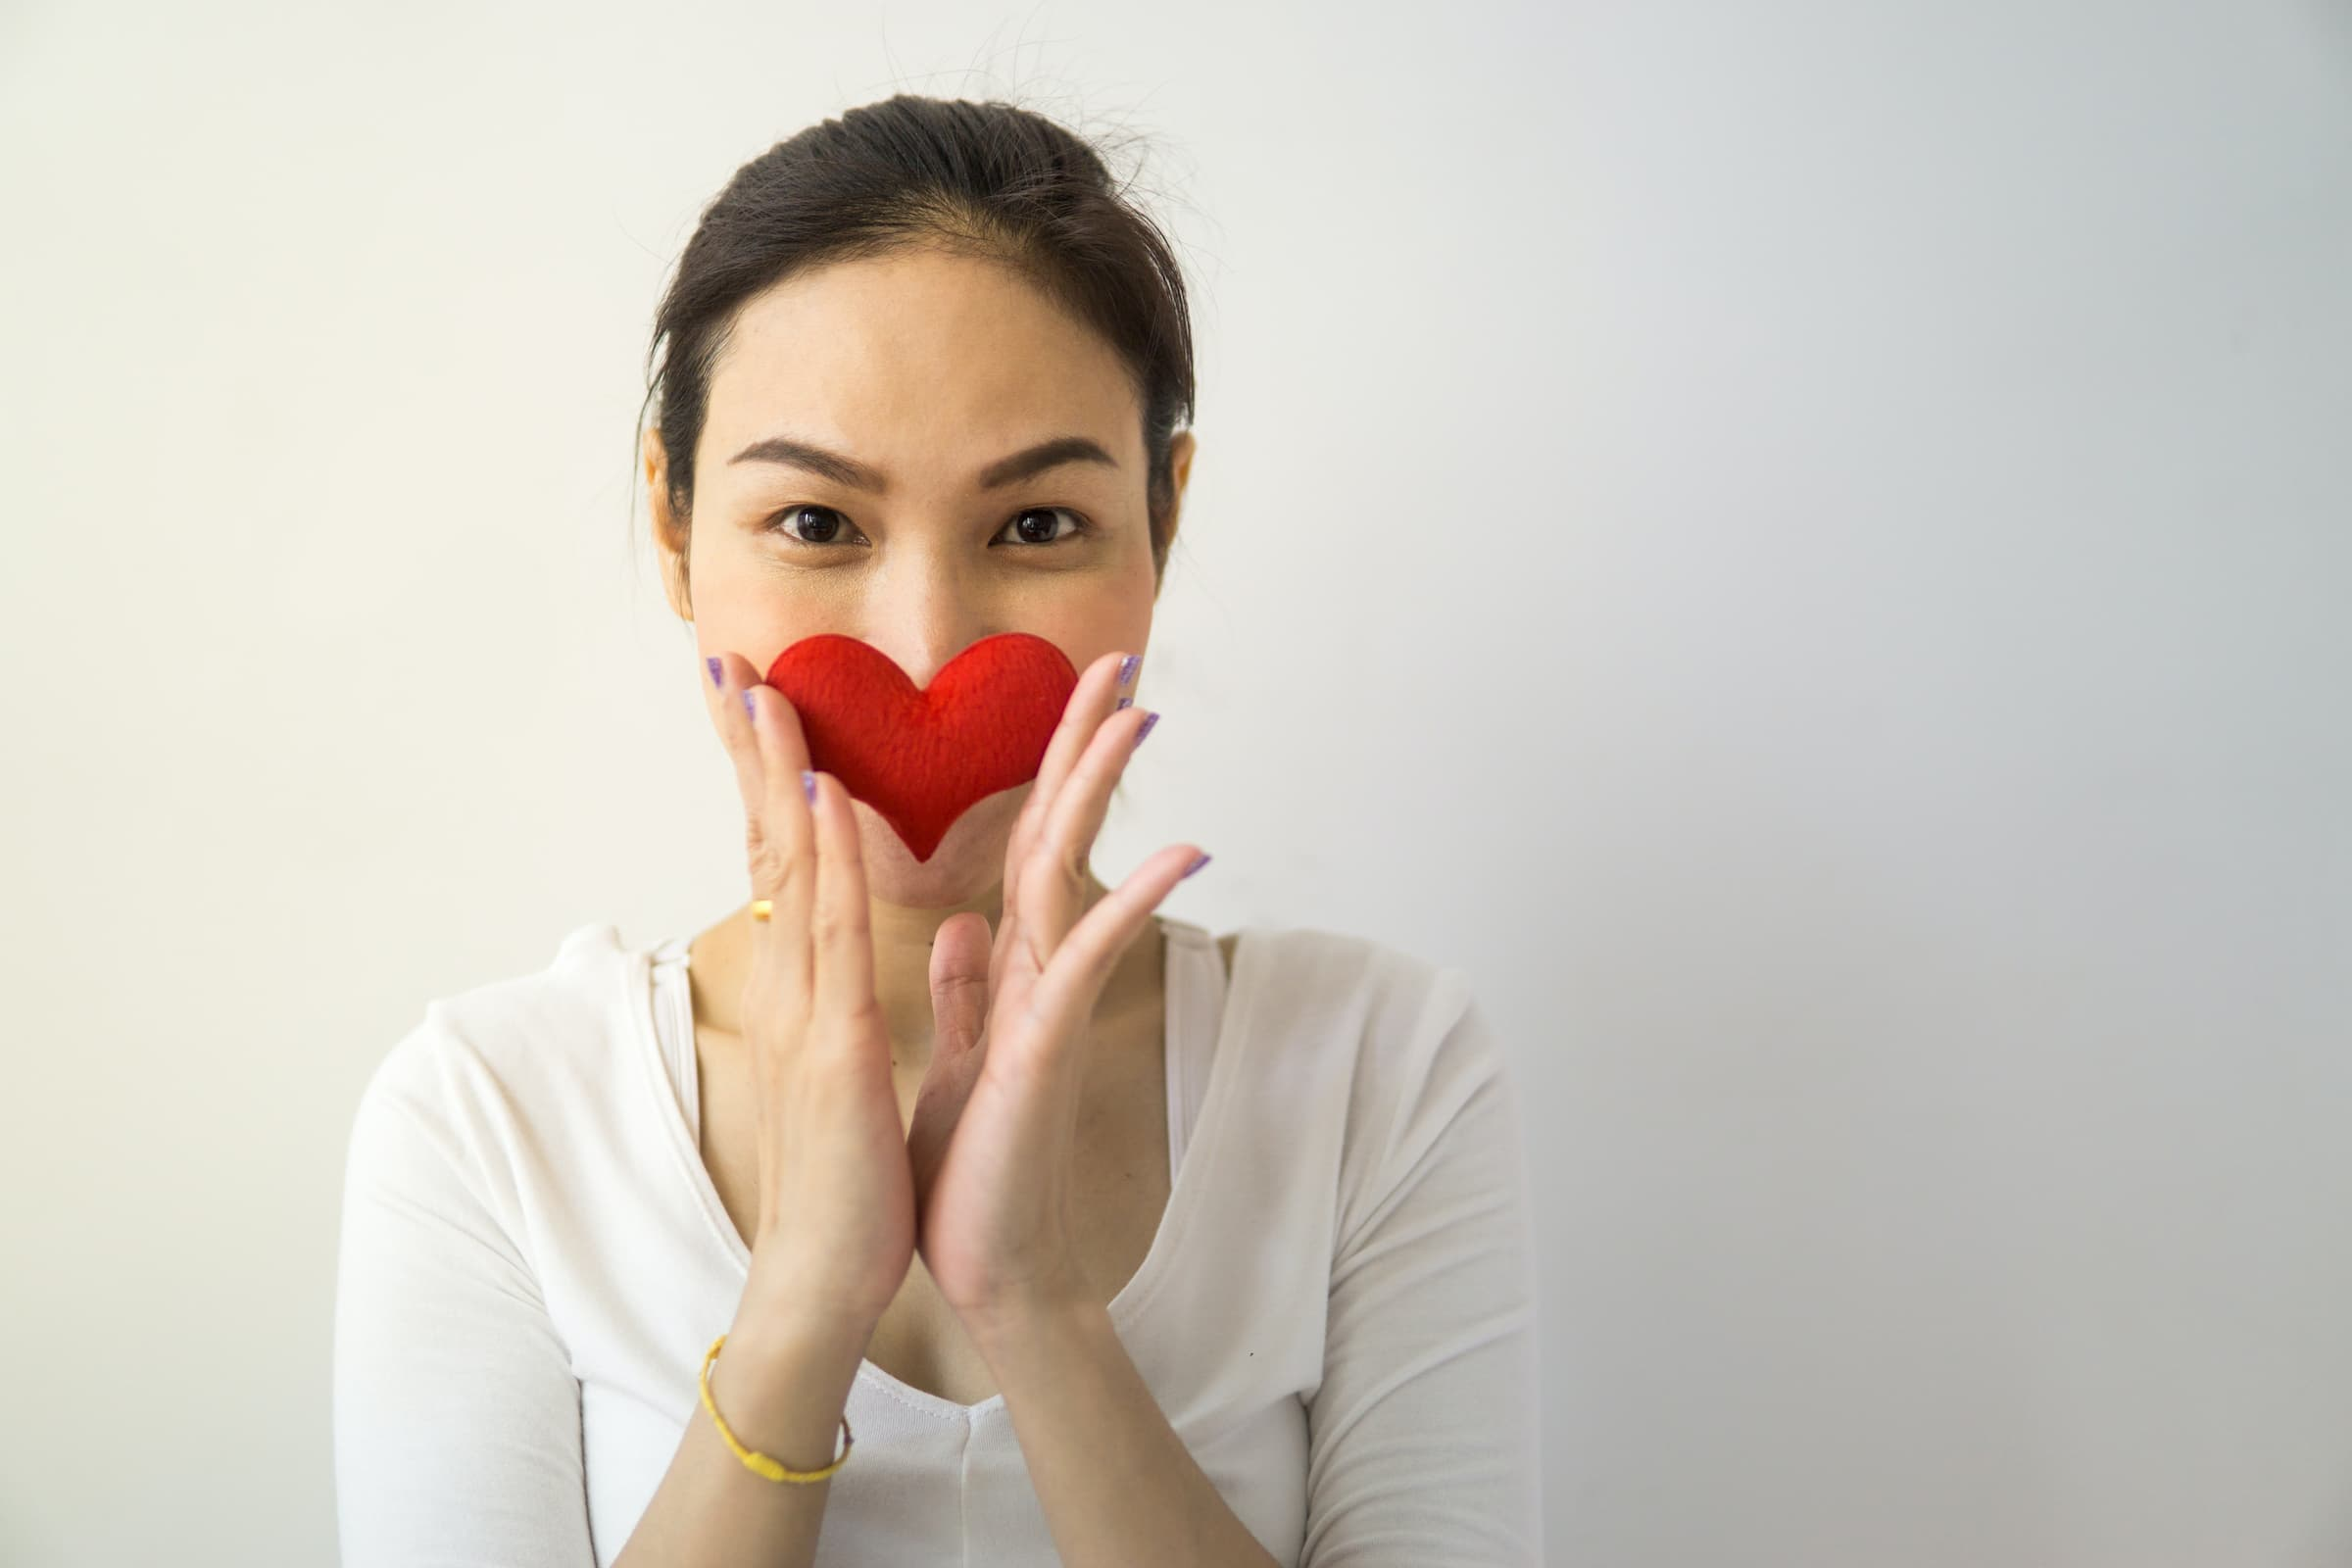 asian woman standing with heart up to nose smiling and asking for donations